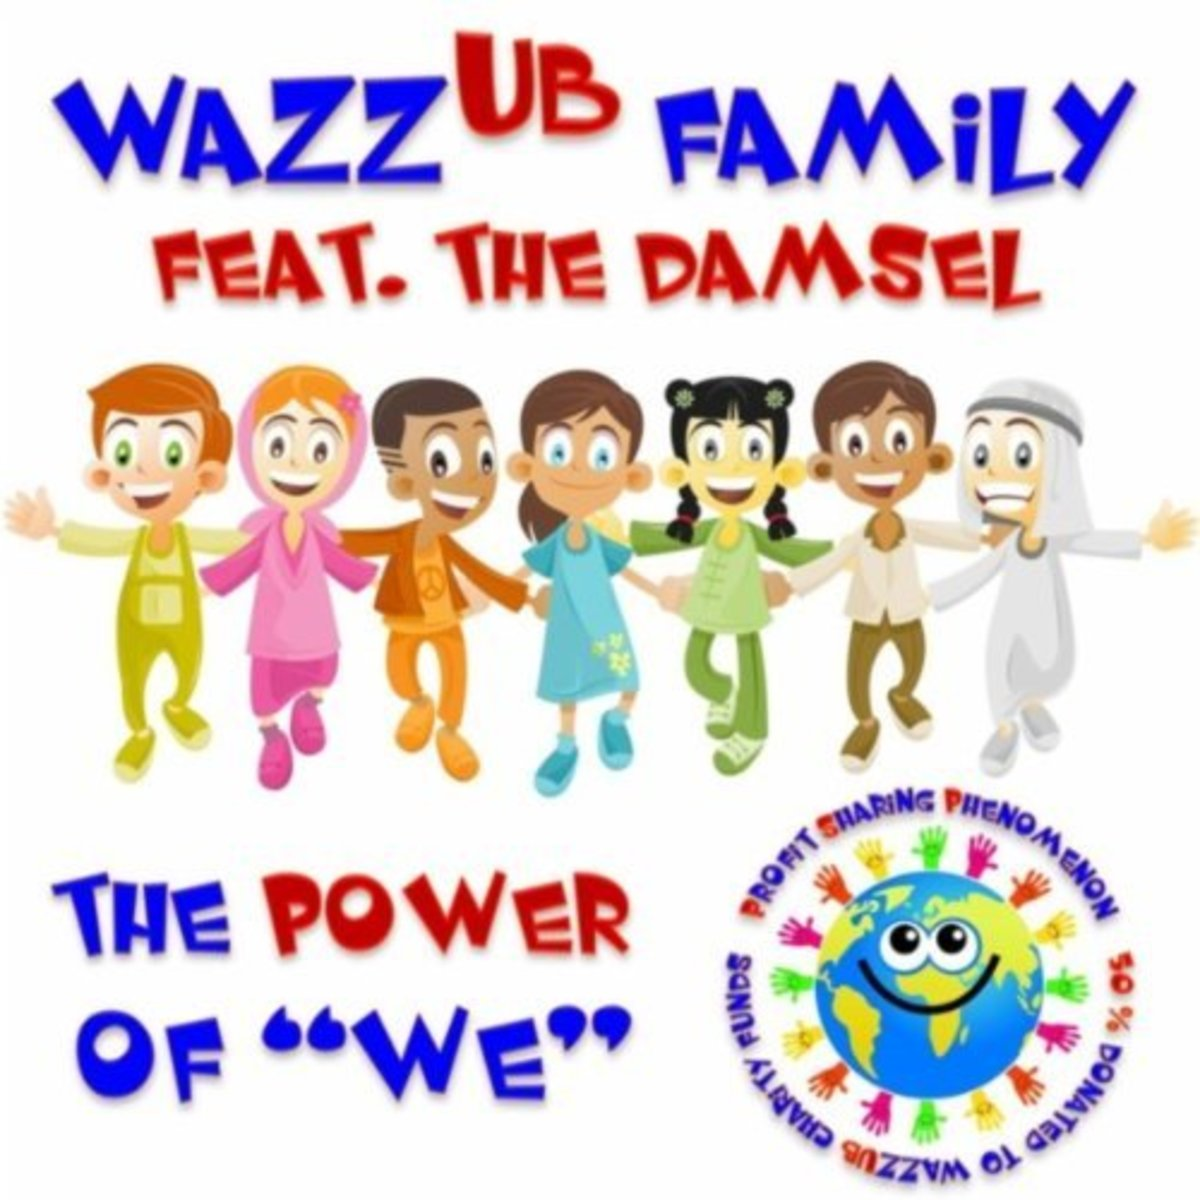 """""""The Power of We"""" single cover, says """"profit sharing phenomenon, 50% donated to Wazzub charity funds"""""""